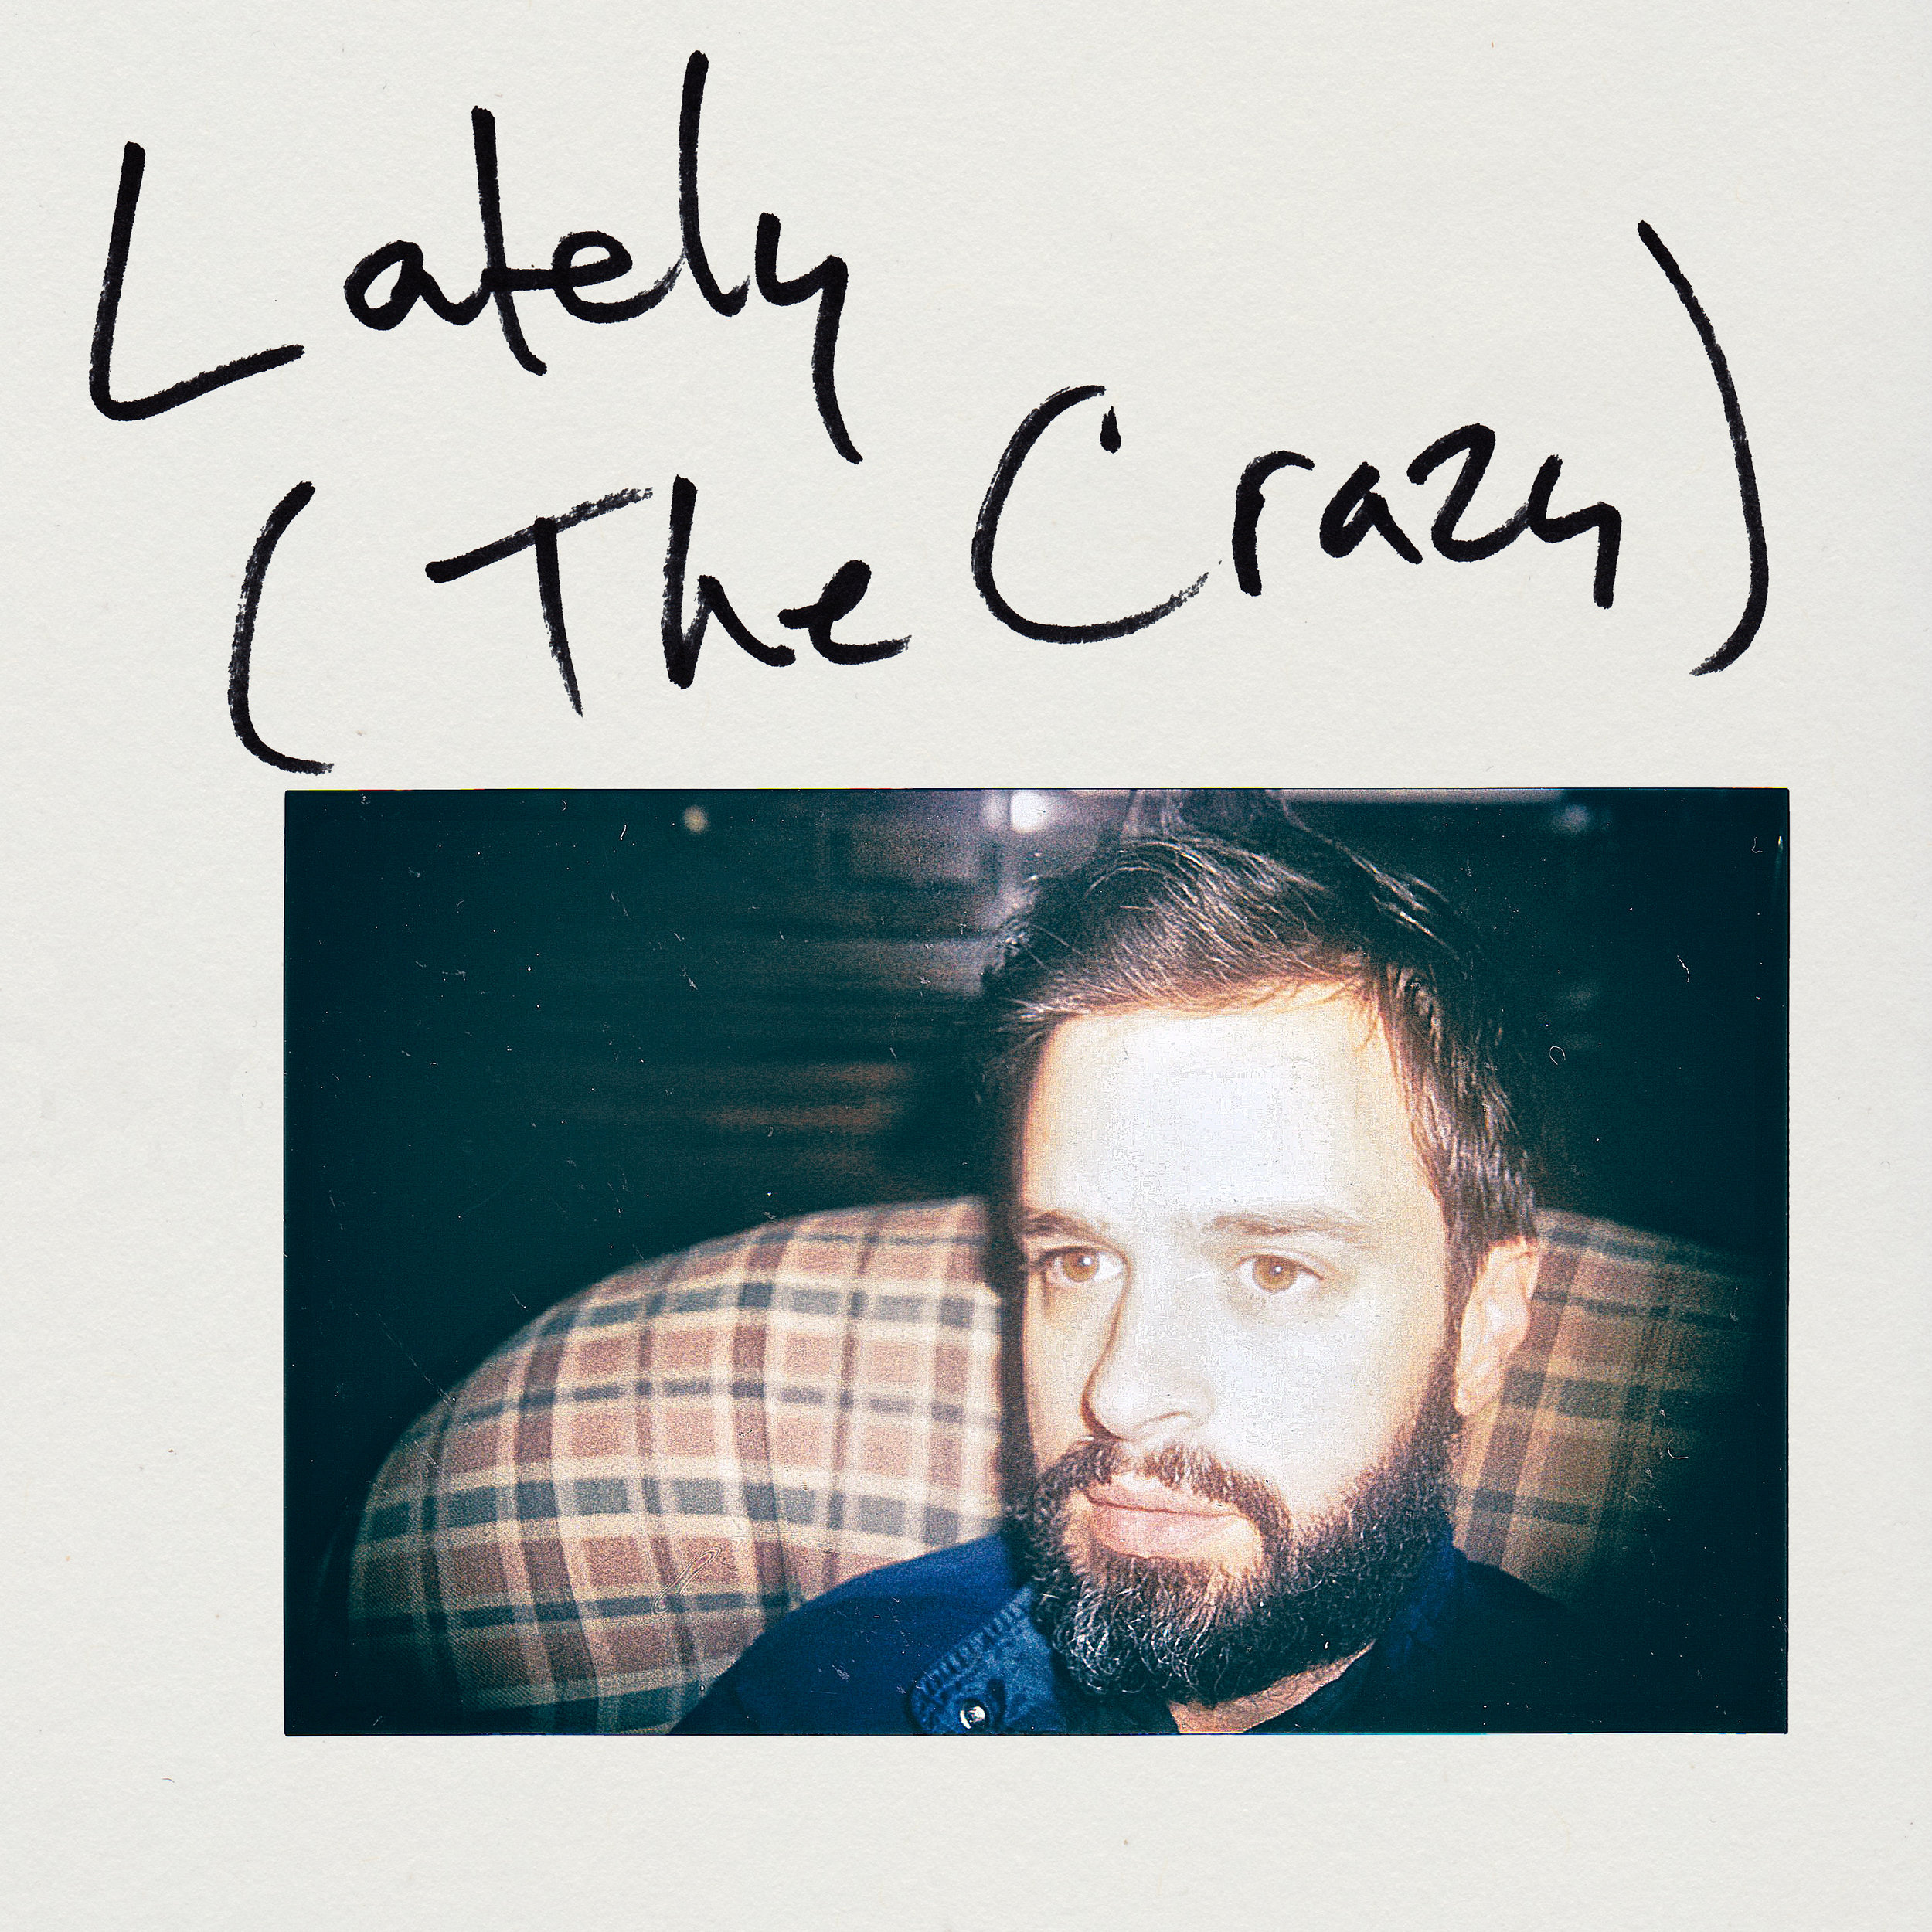 Lately (The Crazy) - Final Cover.jpg